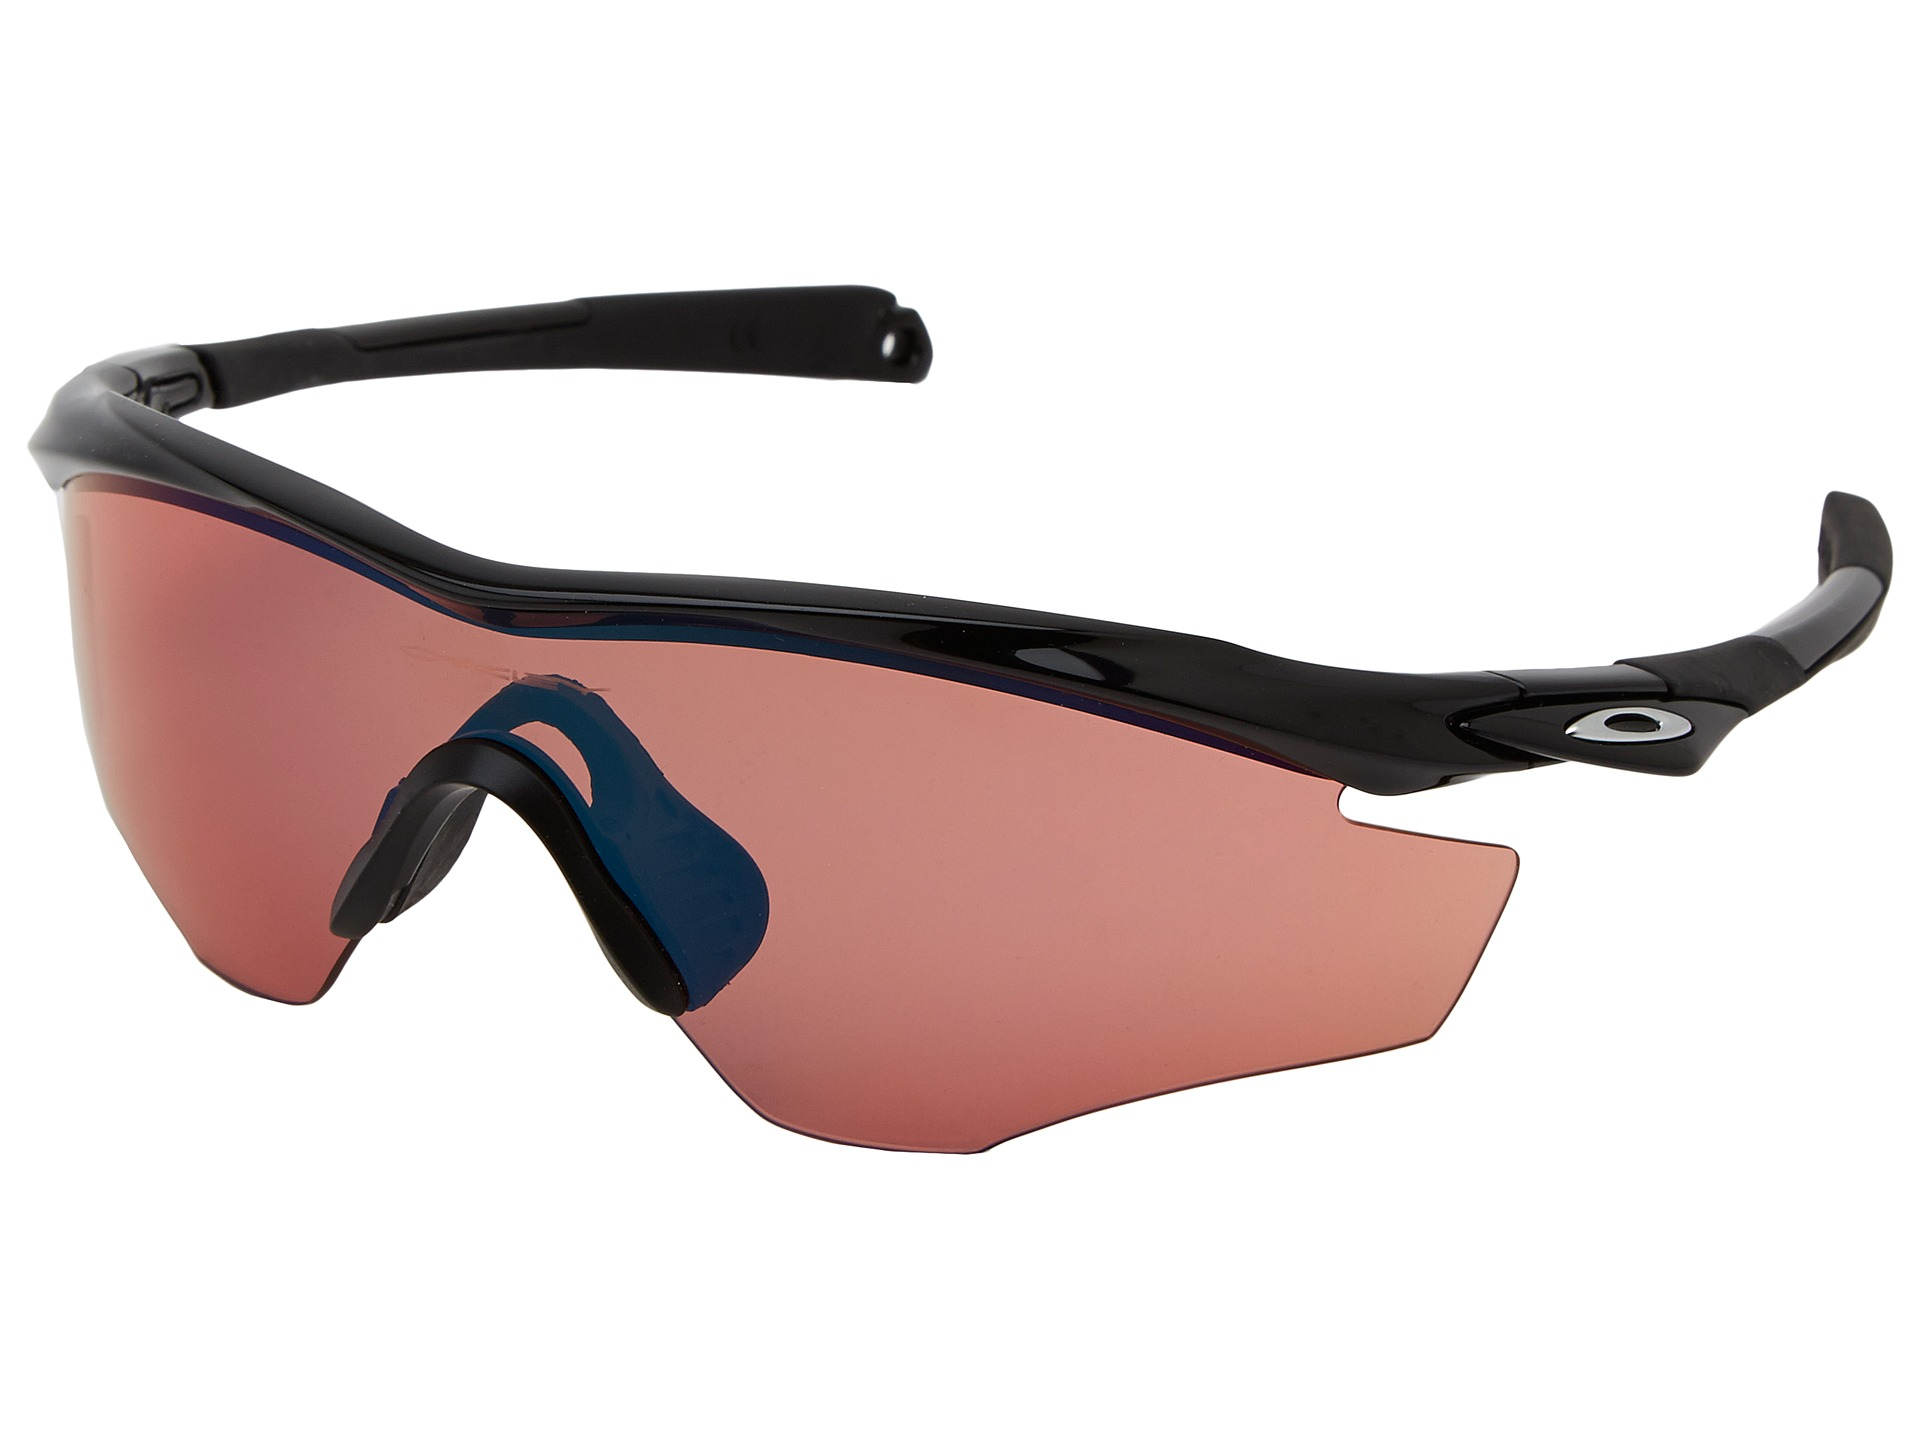 Oakley M2 Frame Glasses : Oakley M2 Frame - Zappos.com Free Shipping BOTH Ways